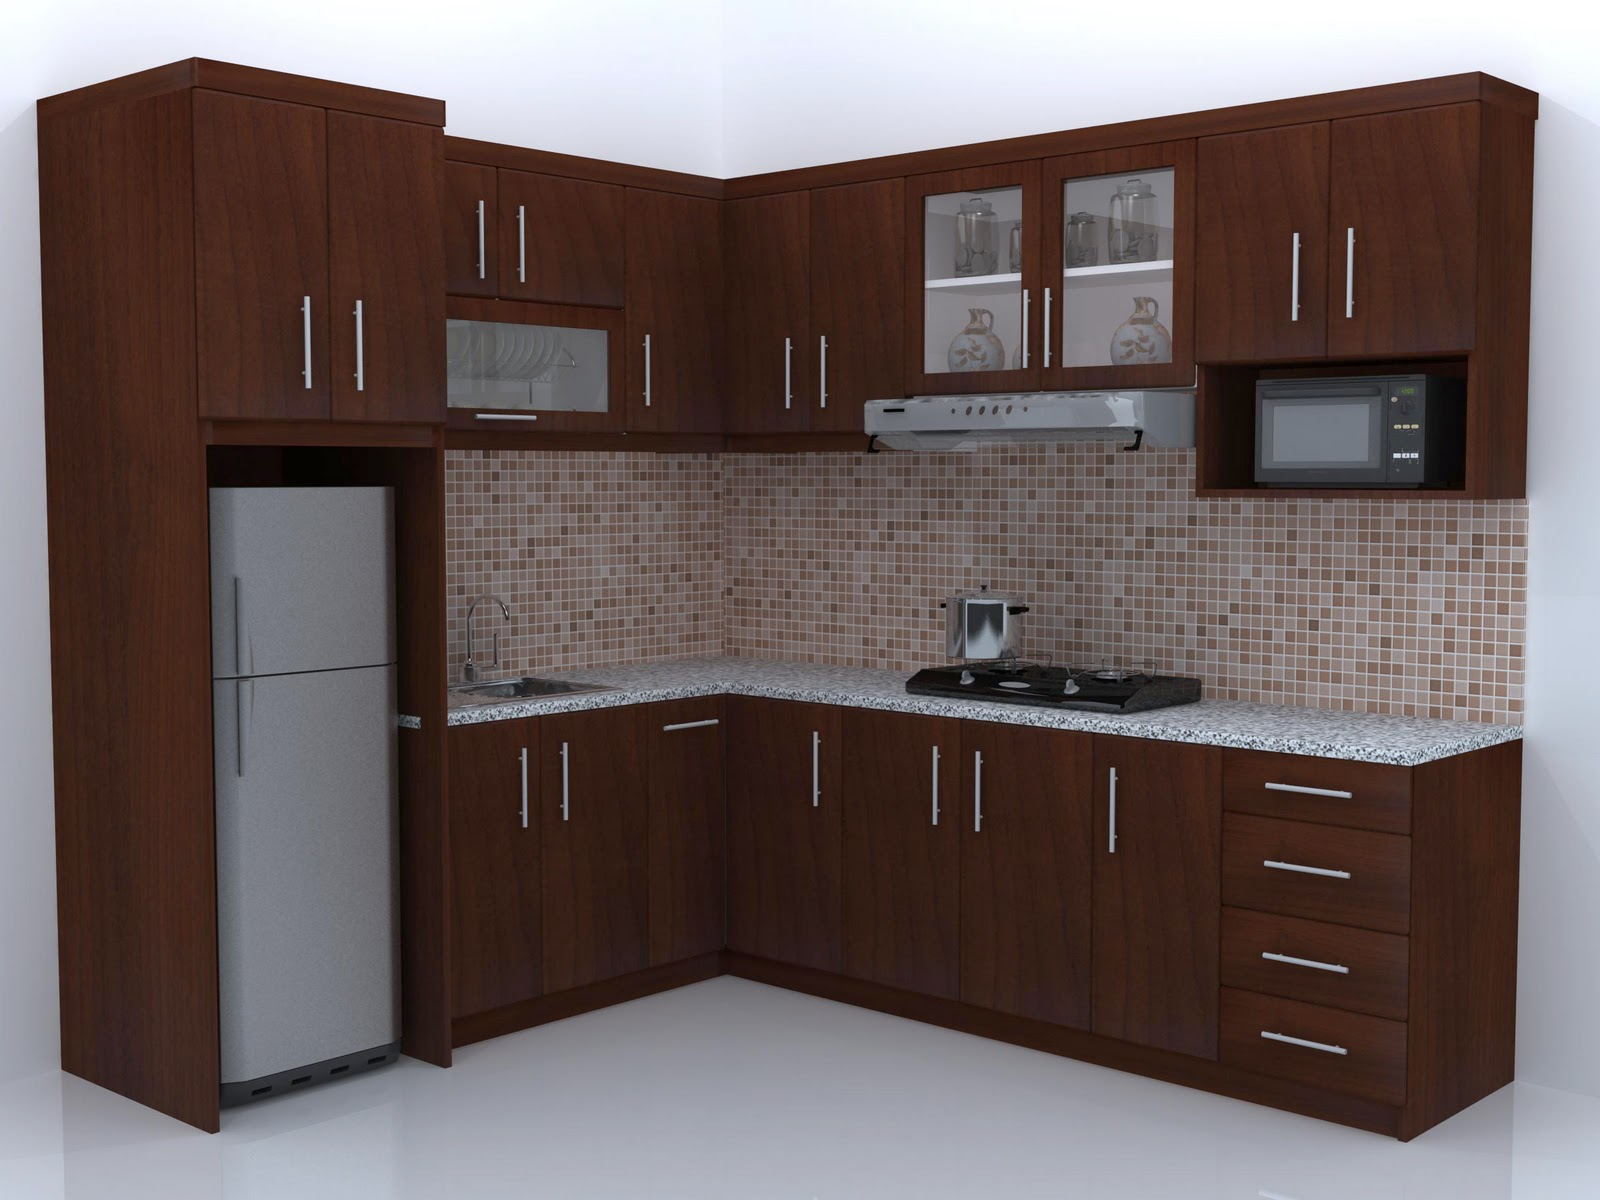 Limmar furniture tips trik memilih kitchen set for Kitchen set yang baik